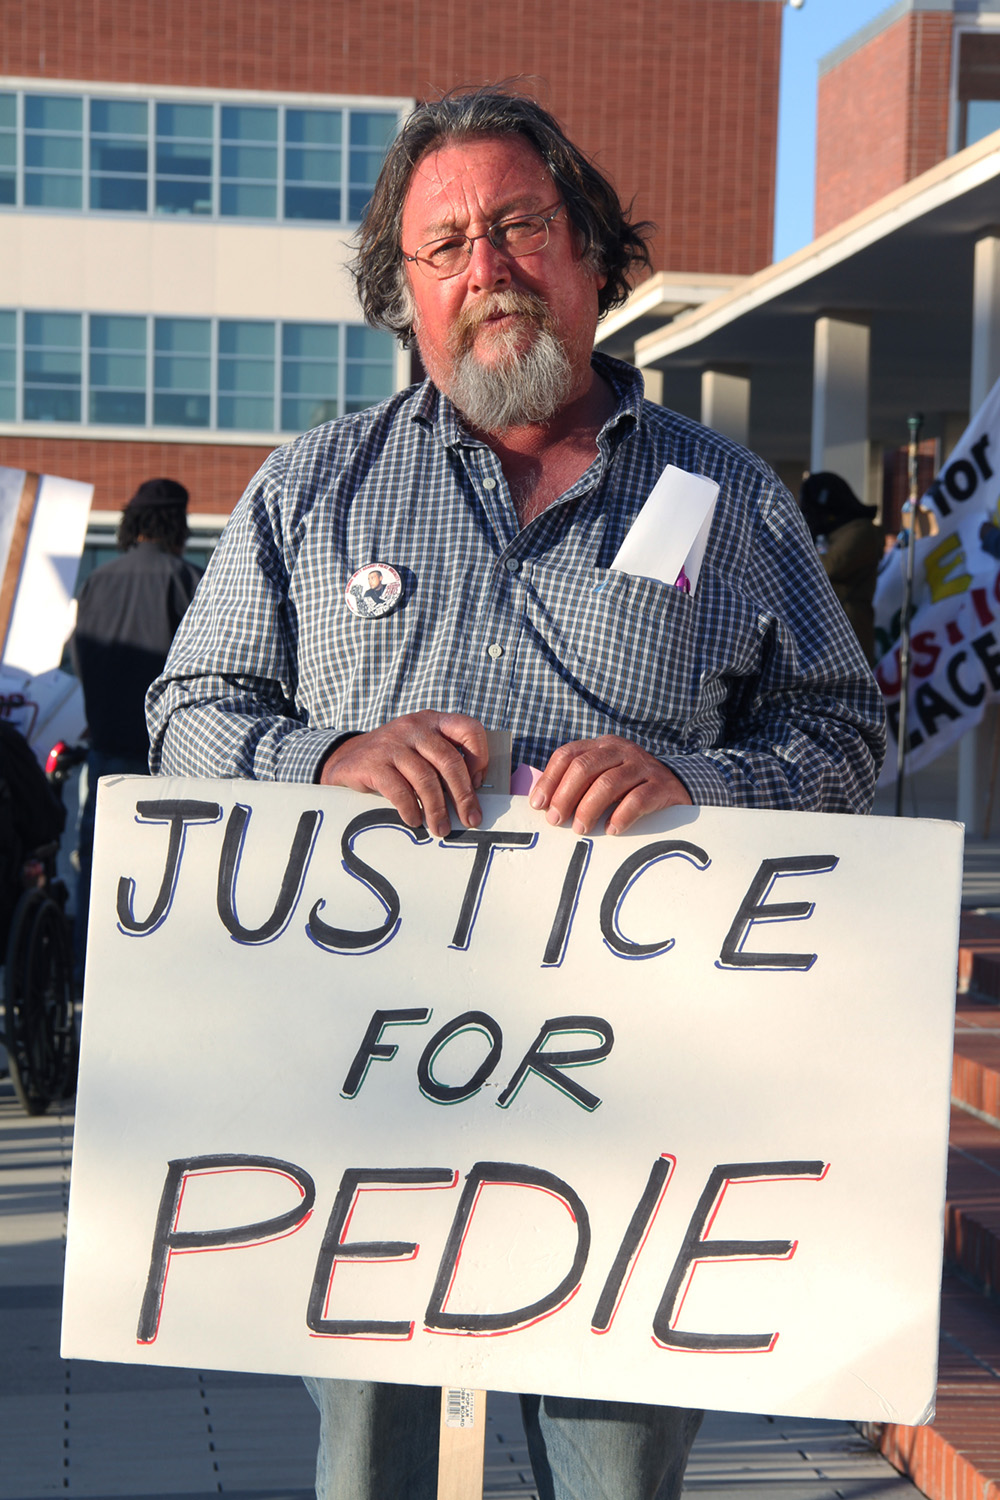 Six Months Later, Family of 'Pedie' Calling for Officer to Be Charged